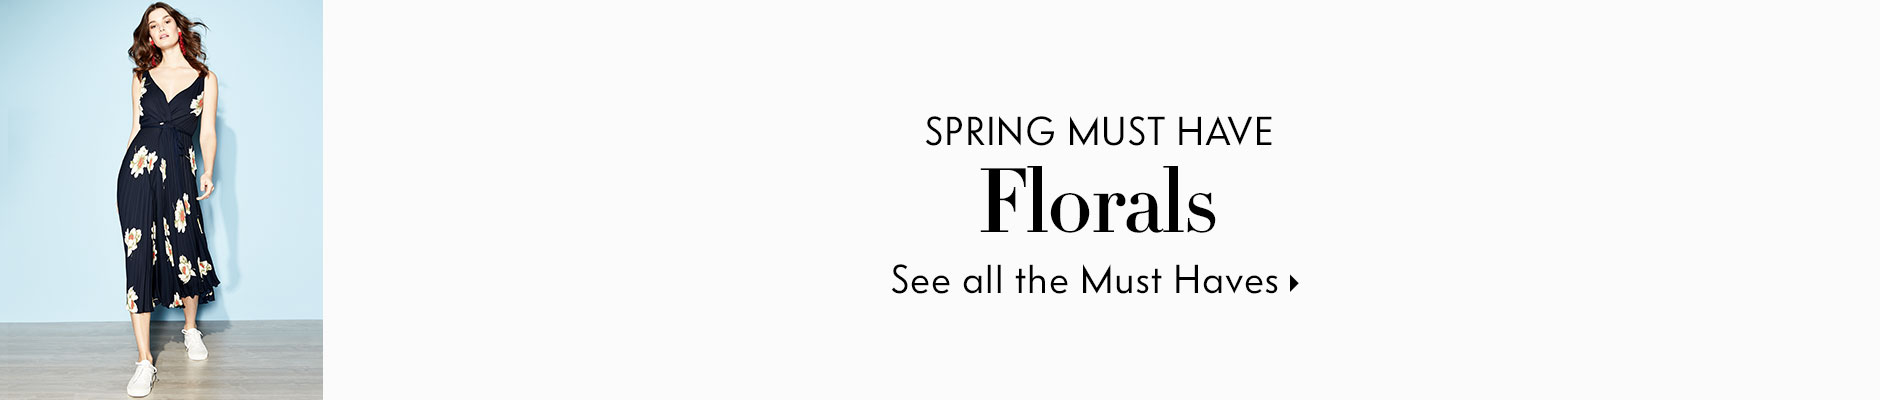 Spring Must Have Florals - See all the Must Haves